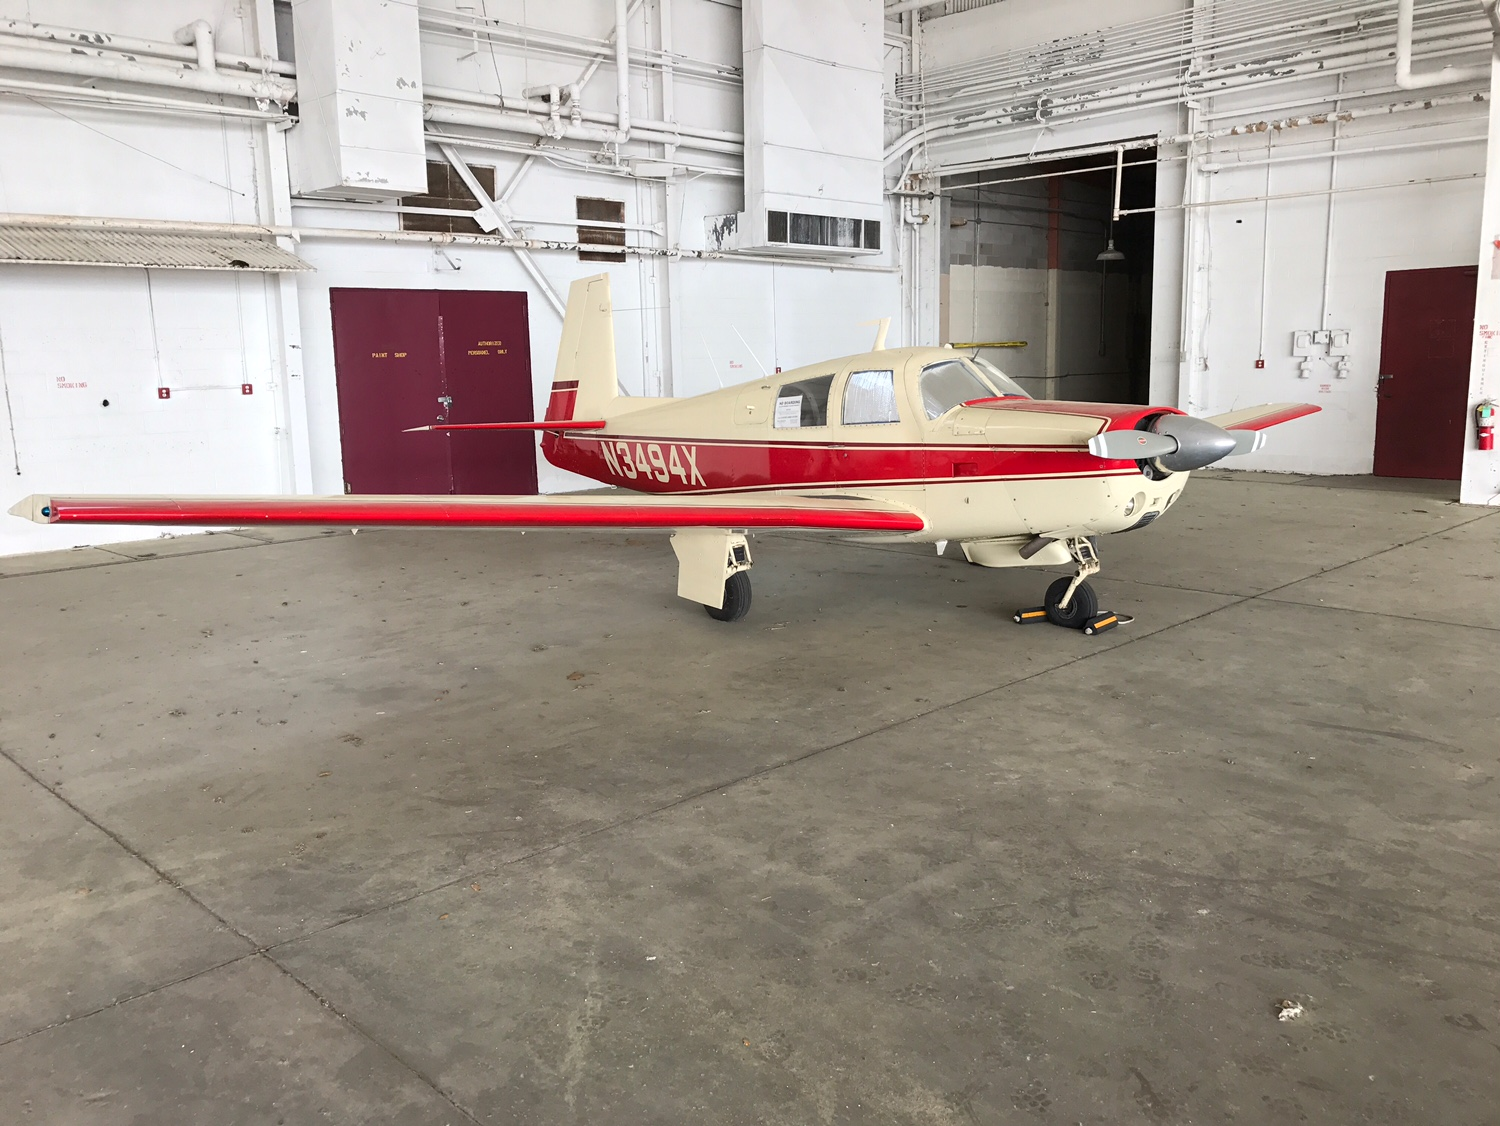 U.S. Treasury Aircraft & Vessel Online Auction (March 22-29)